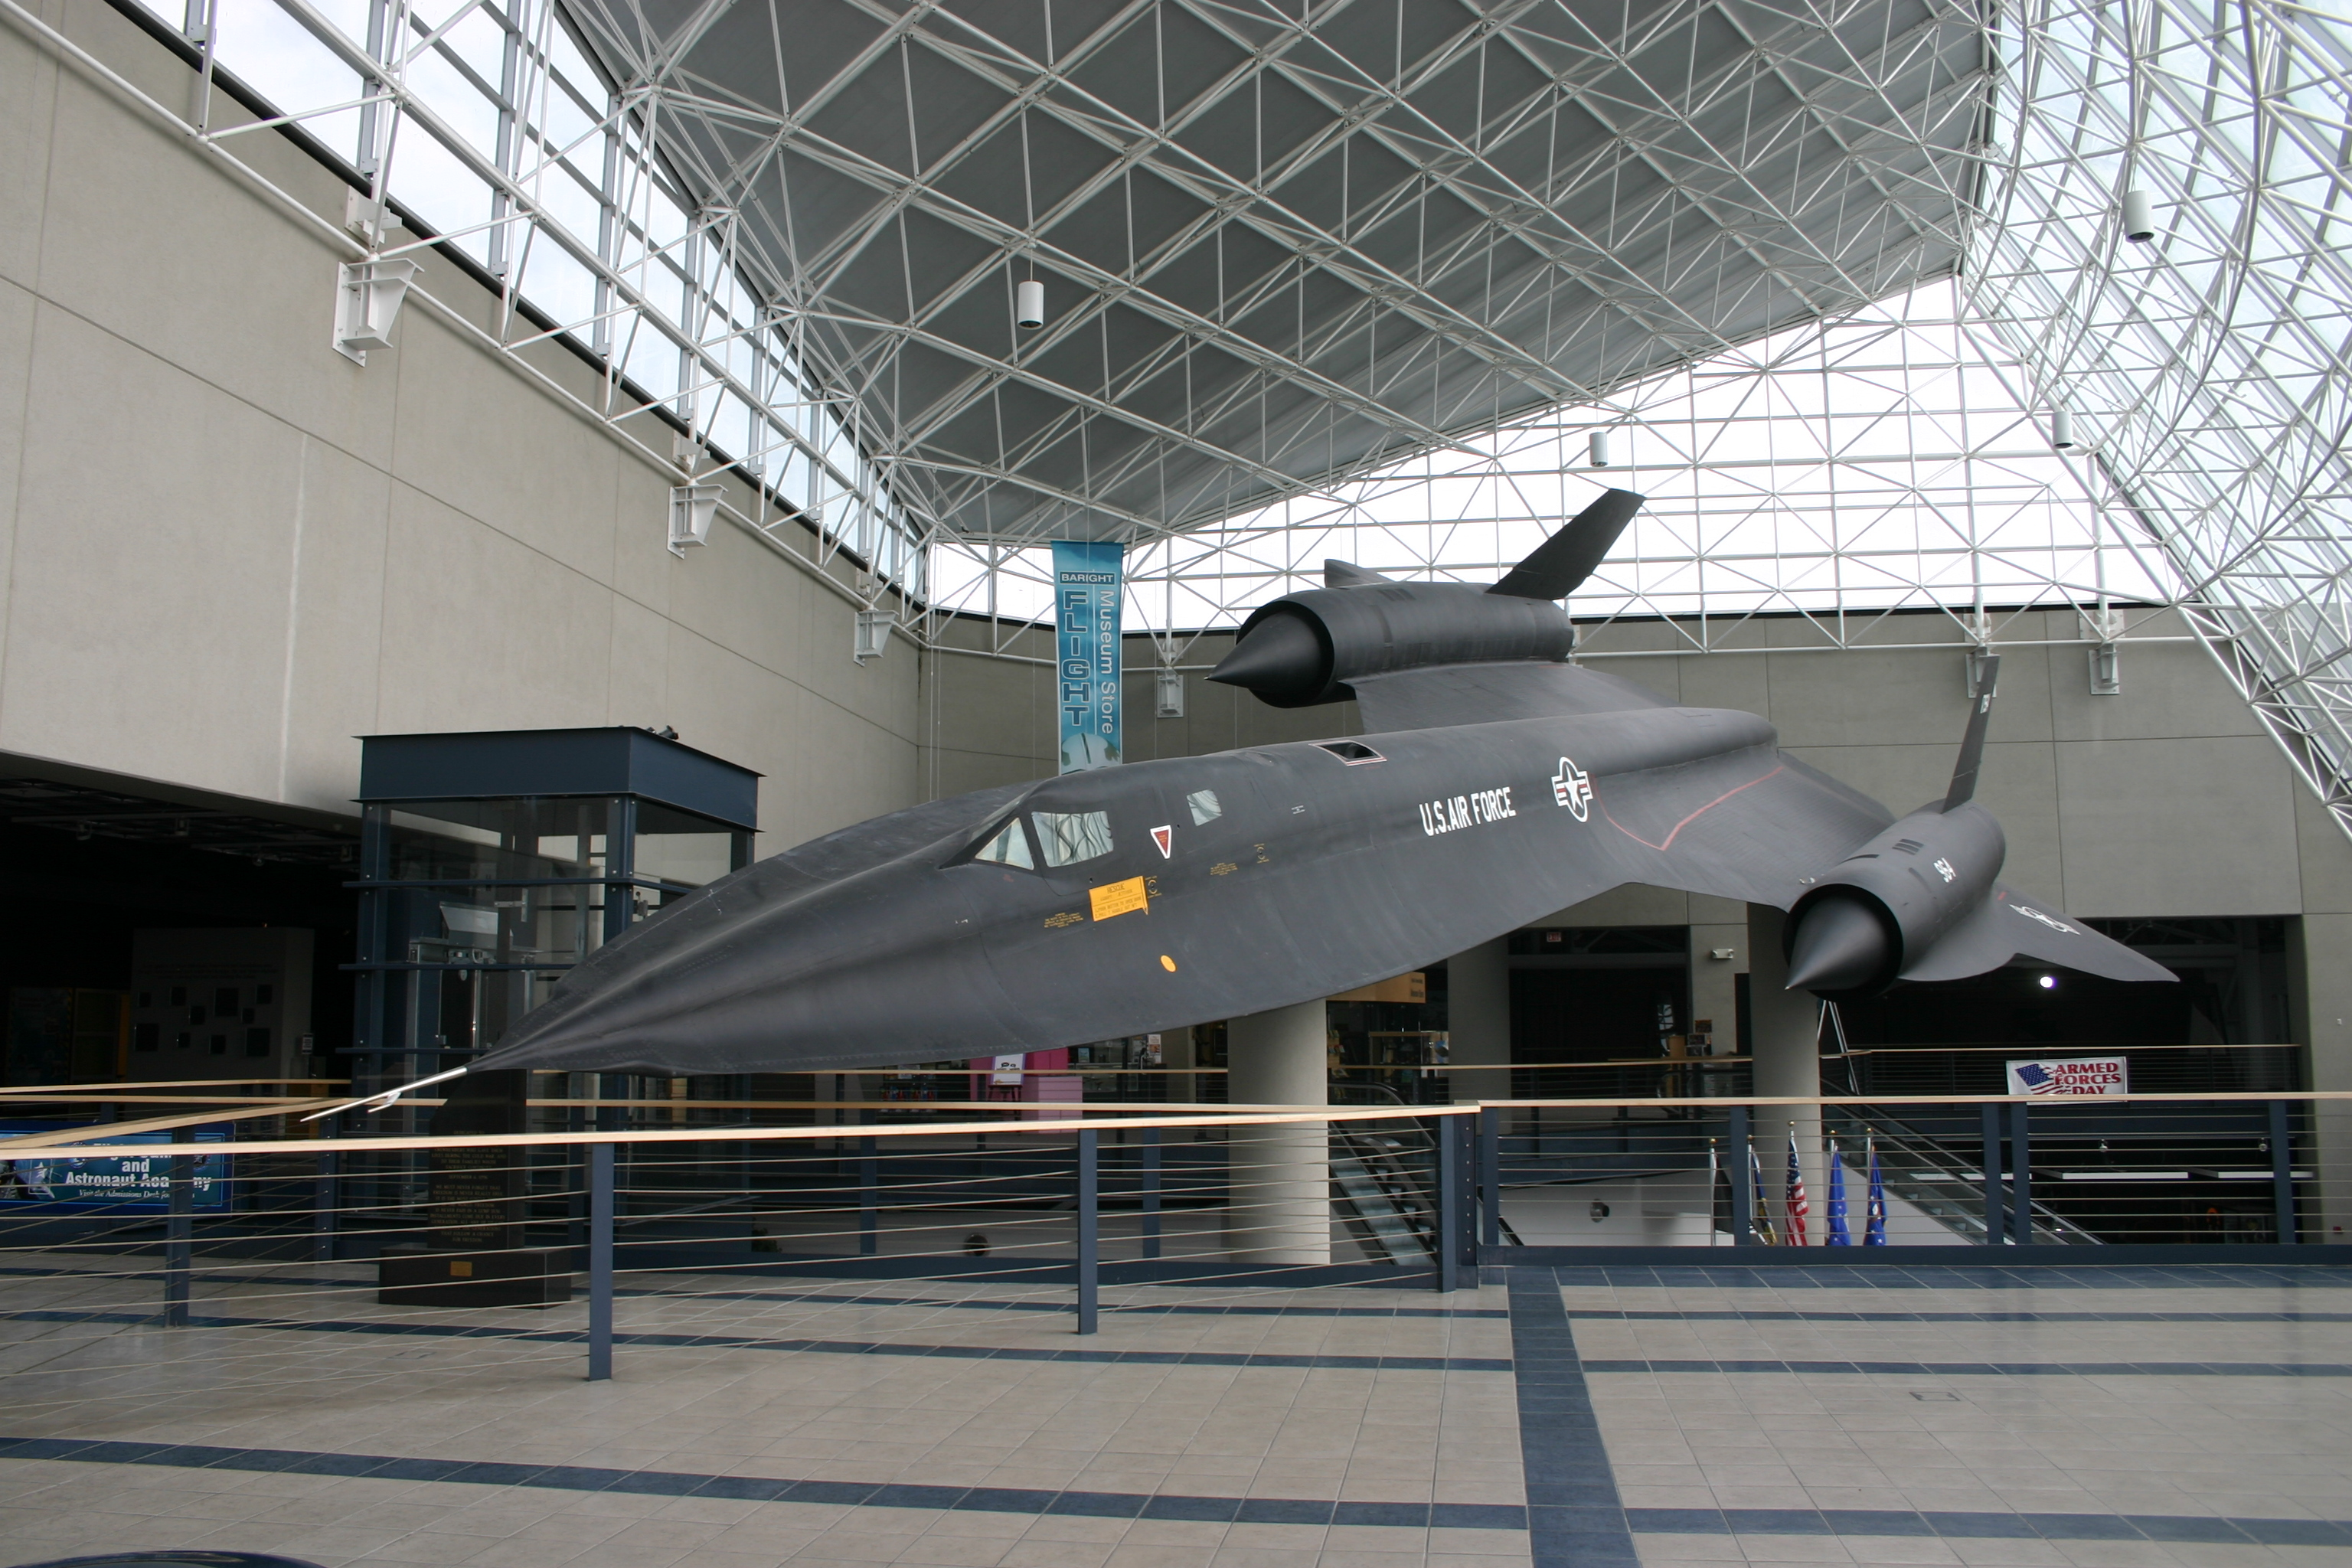 Ironically, the only SR-71 I've ever seen in person was in Nebraska. It's mounted in the lobby of the Strategic Air Command Museum.